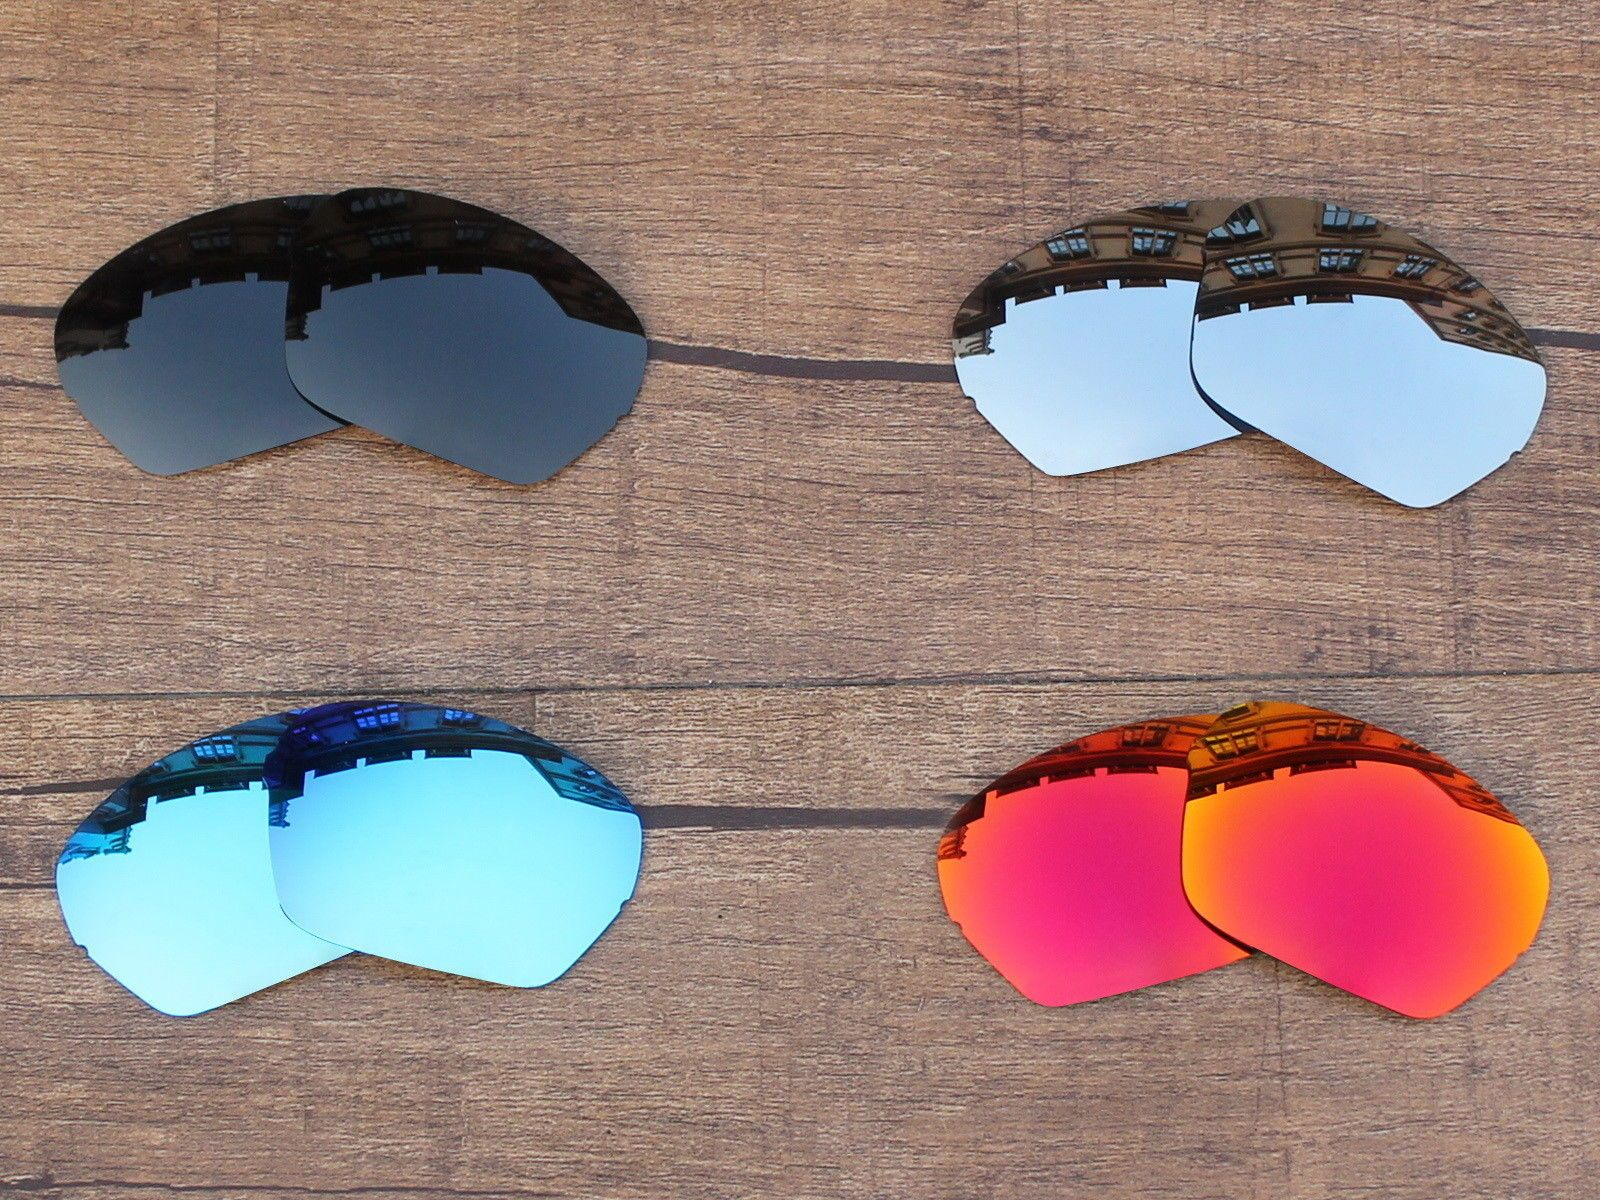 a670184c502  19.53 AUD - Polarized Replacement Lenses For-Oakley Half X Sunglasses  Multi-Options